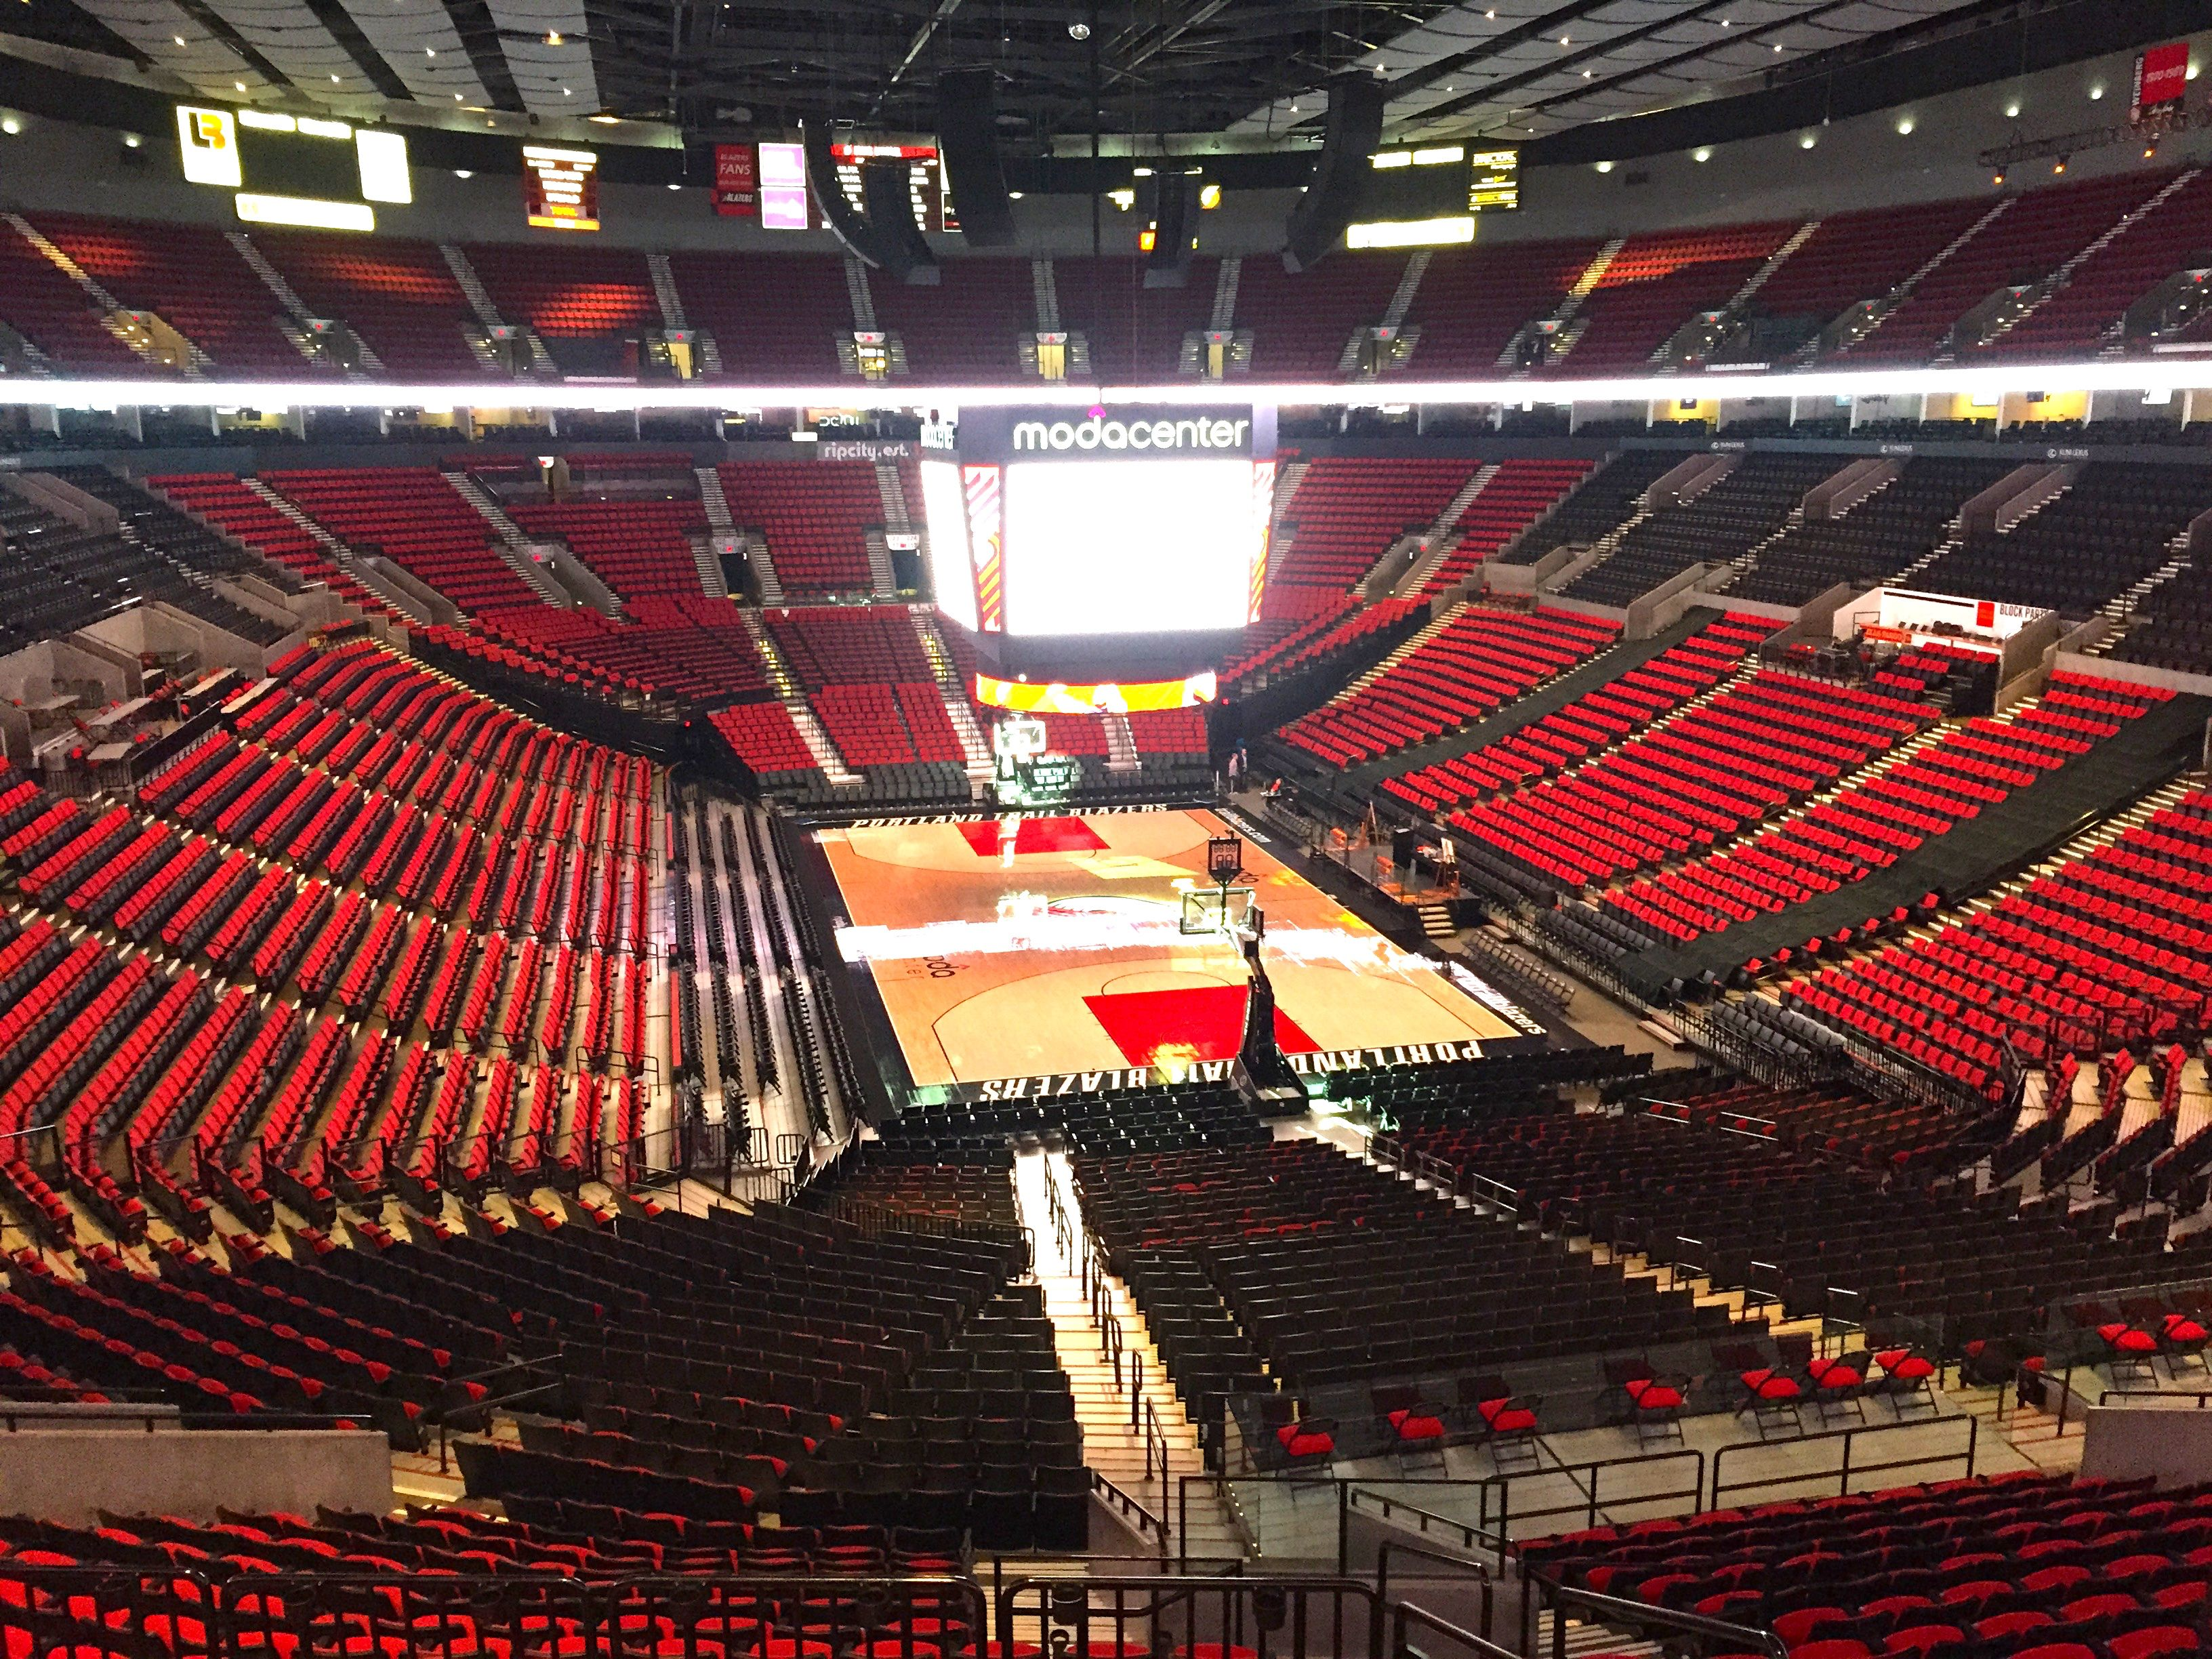 Moda Center Seating Portland Trailblazers Portland Trail Moda Center